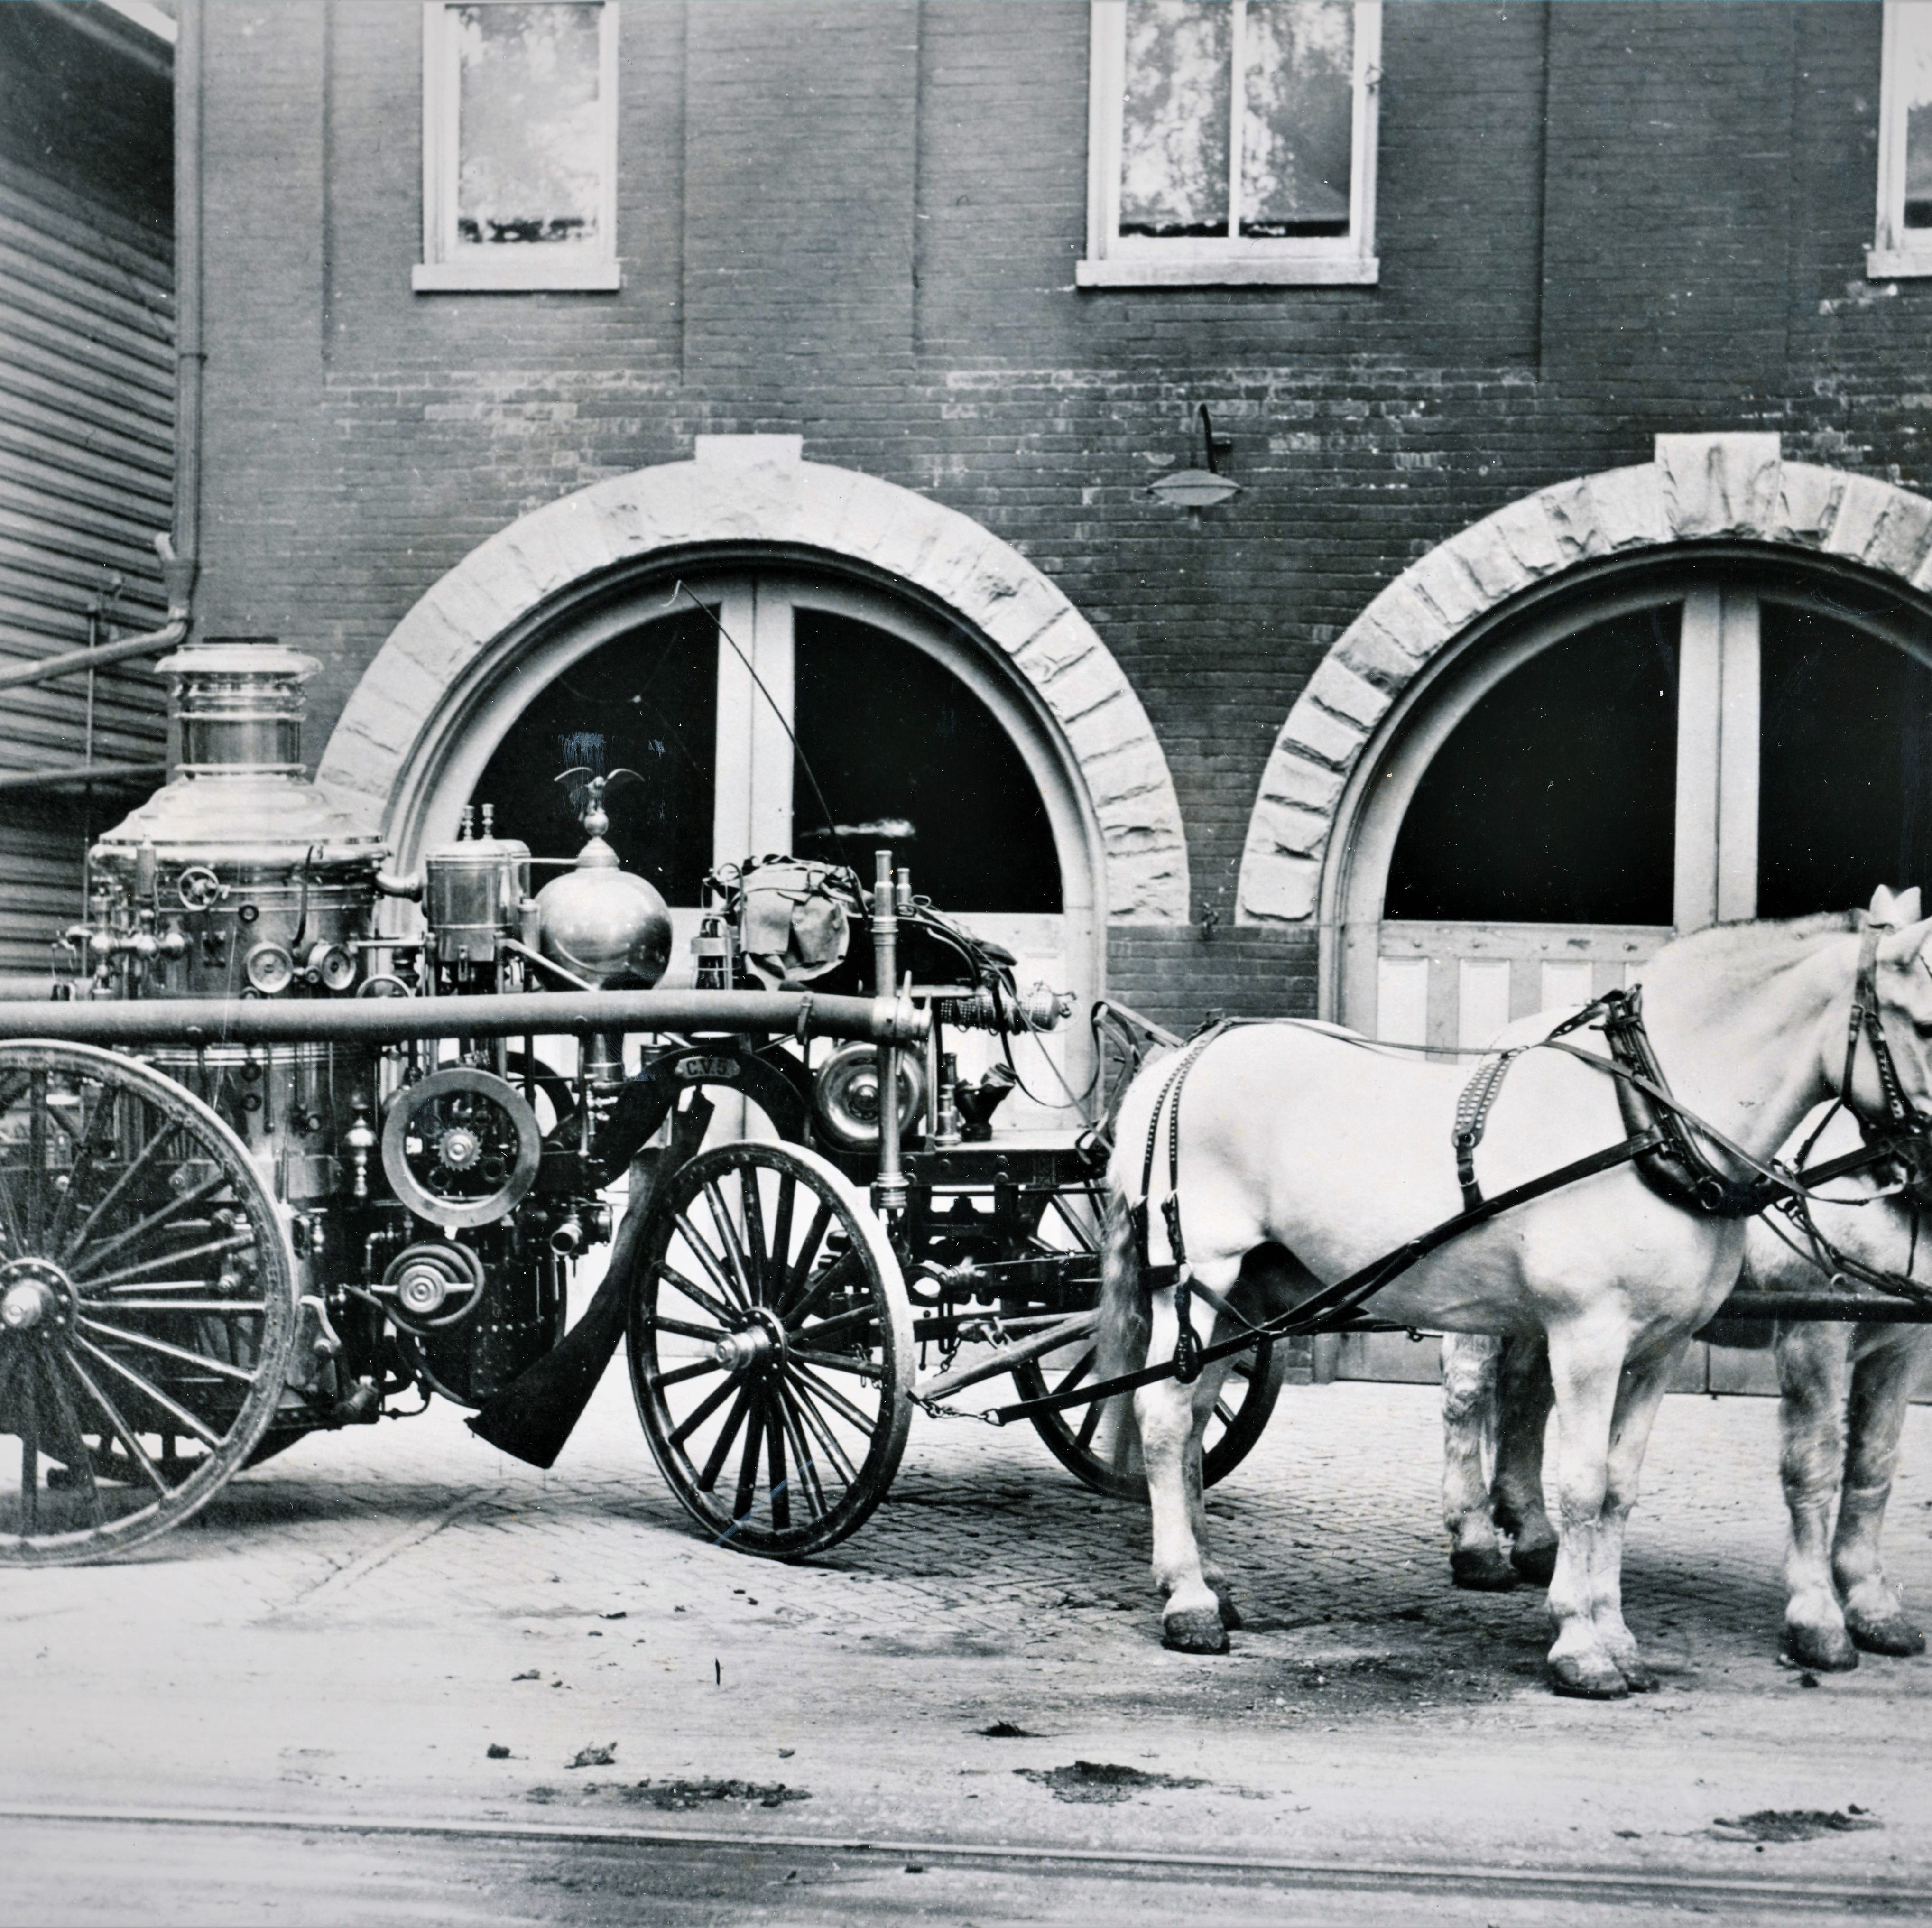 'Ever faithful': Meet the horses that once powered Chambersburg's fire companies